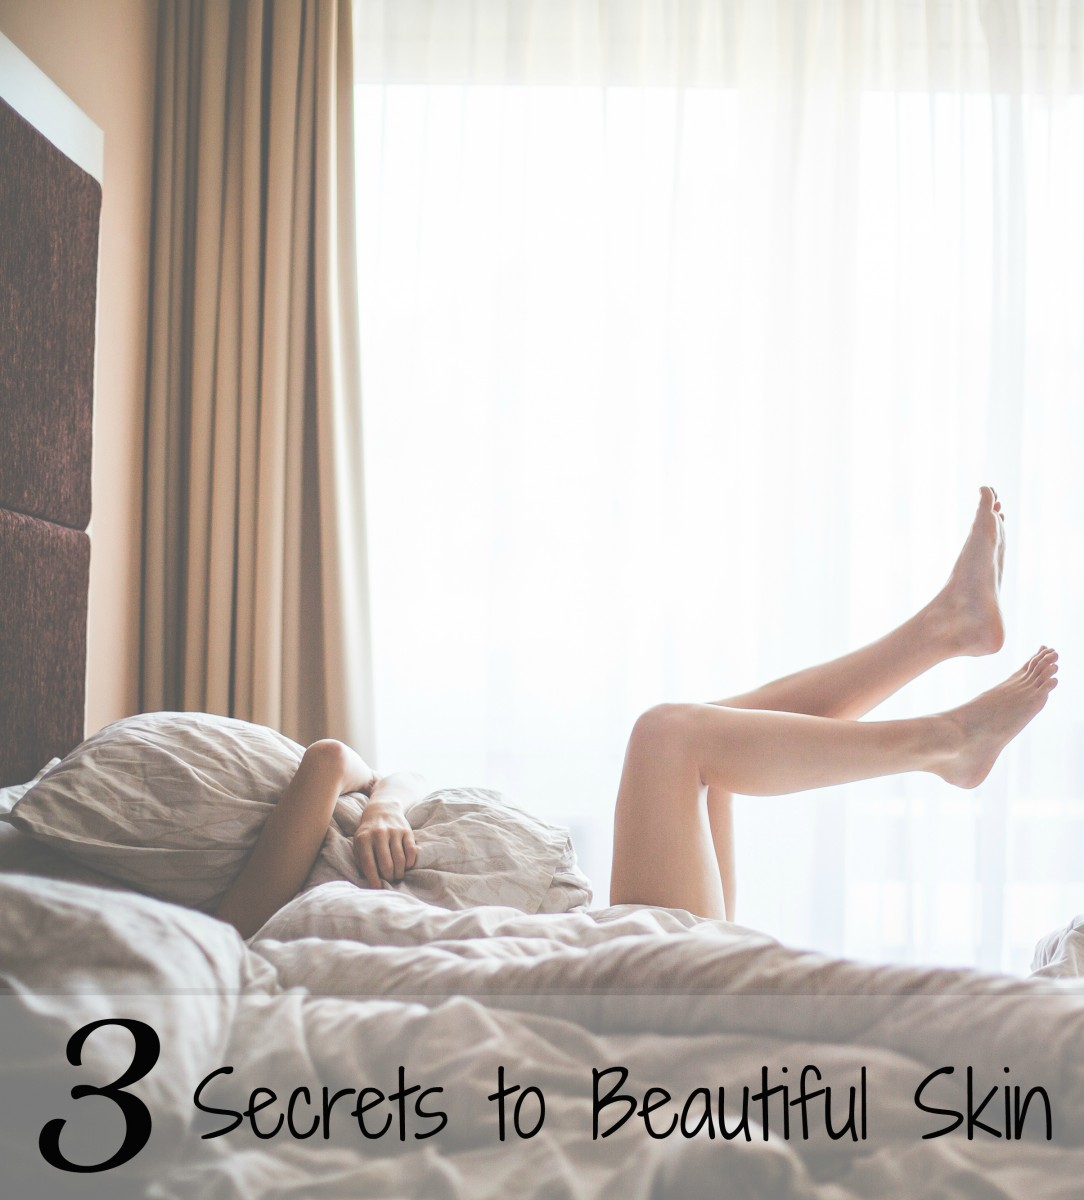 3 secrets to beautiful skin her heartland soul